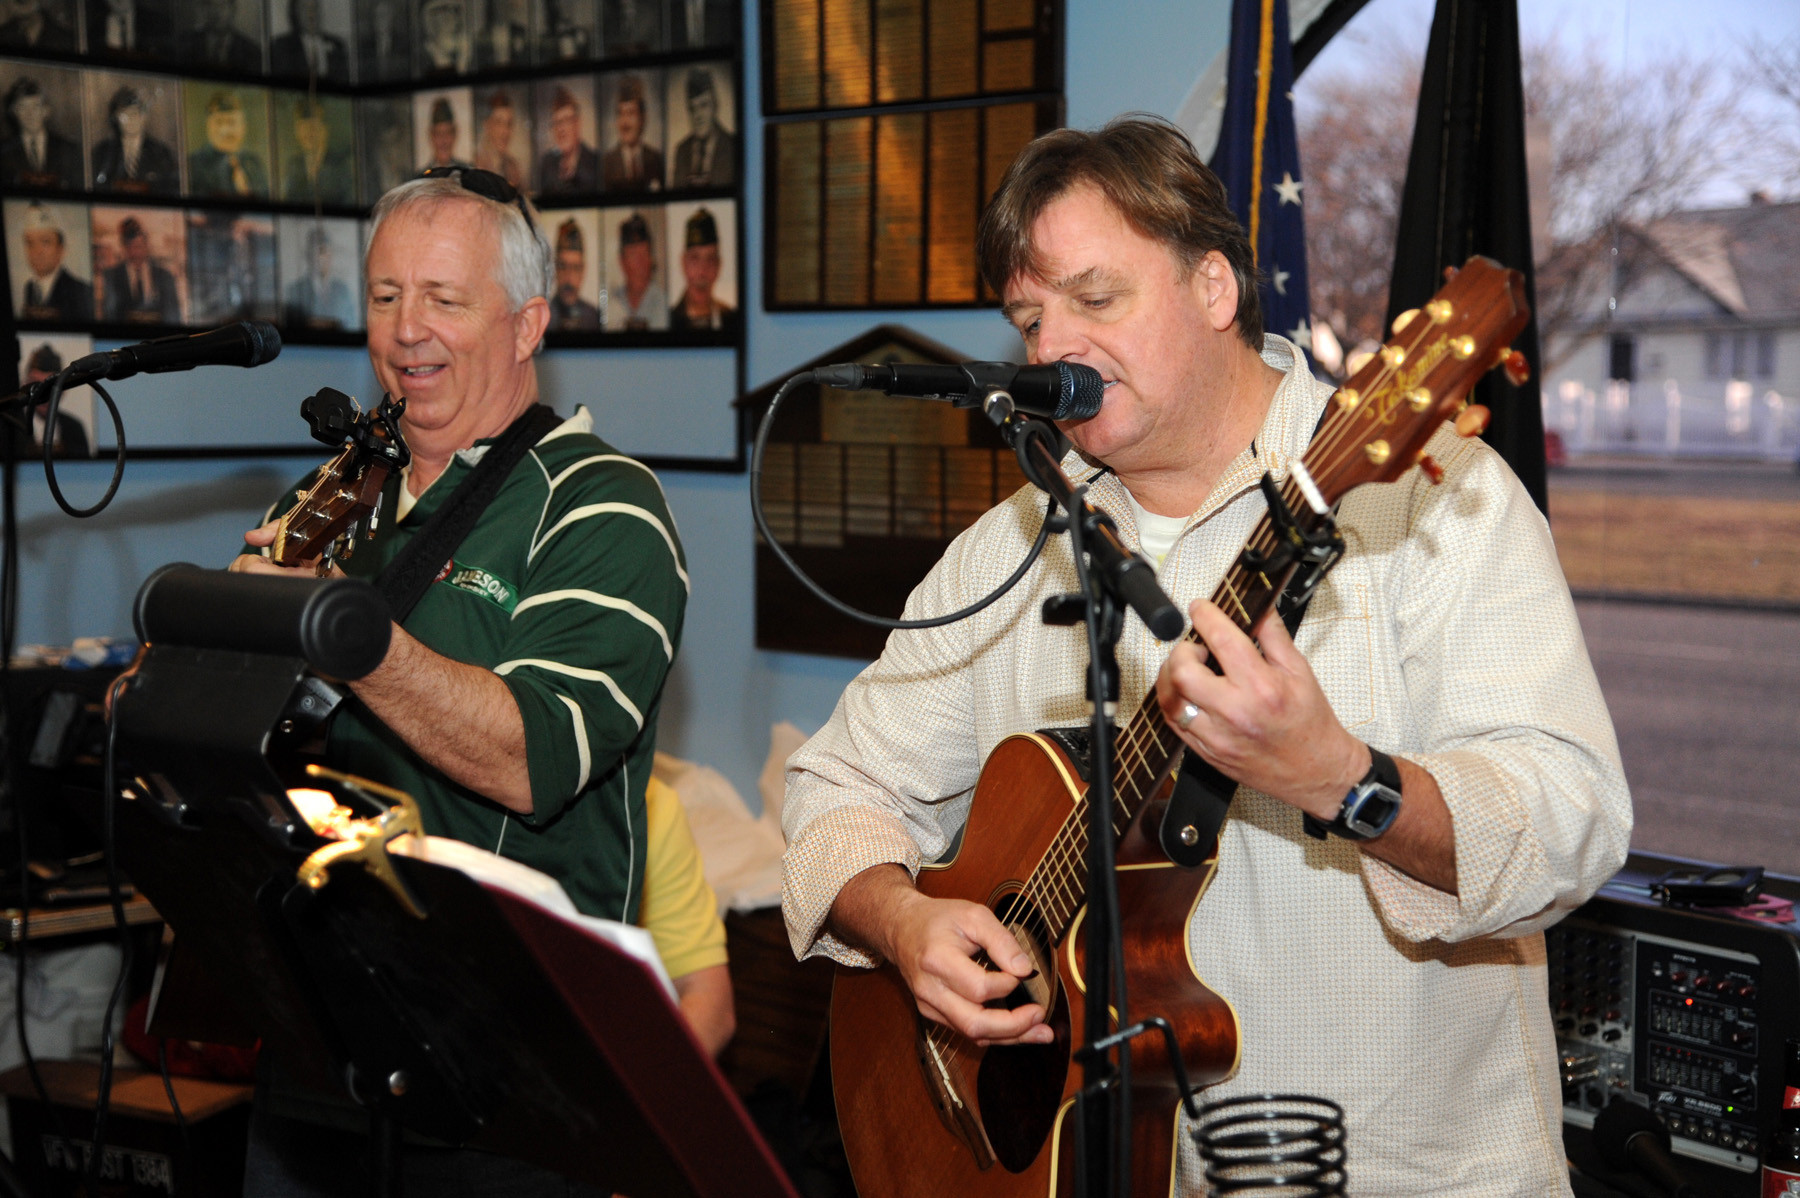 Rick Rempe and Brian Monaghan performed at the Shine's fundraiser at the VFW last Saturday.